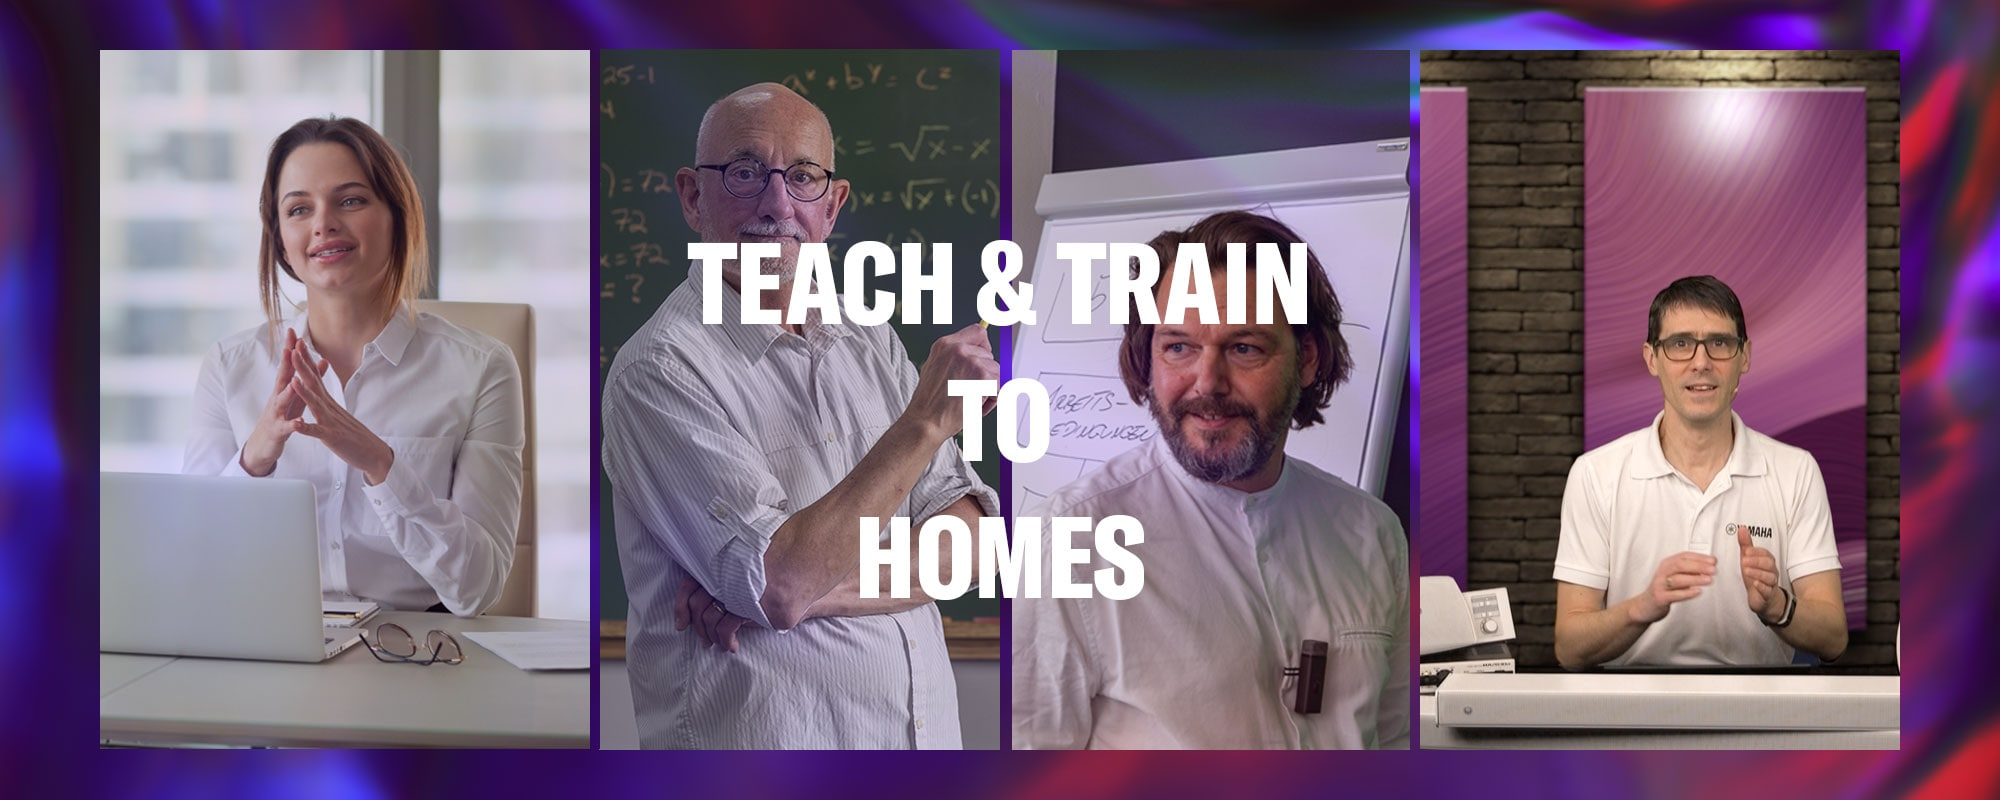 Teach & Train to Homes